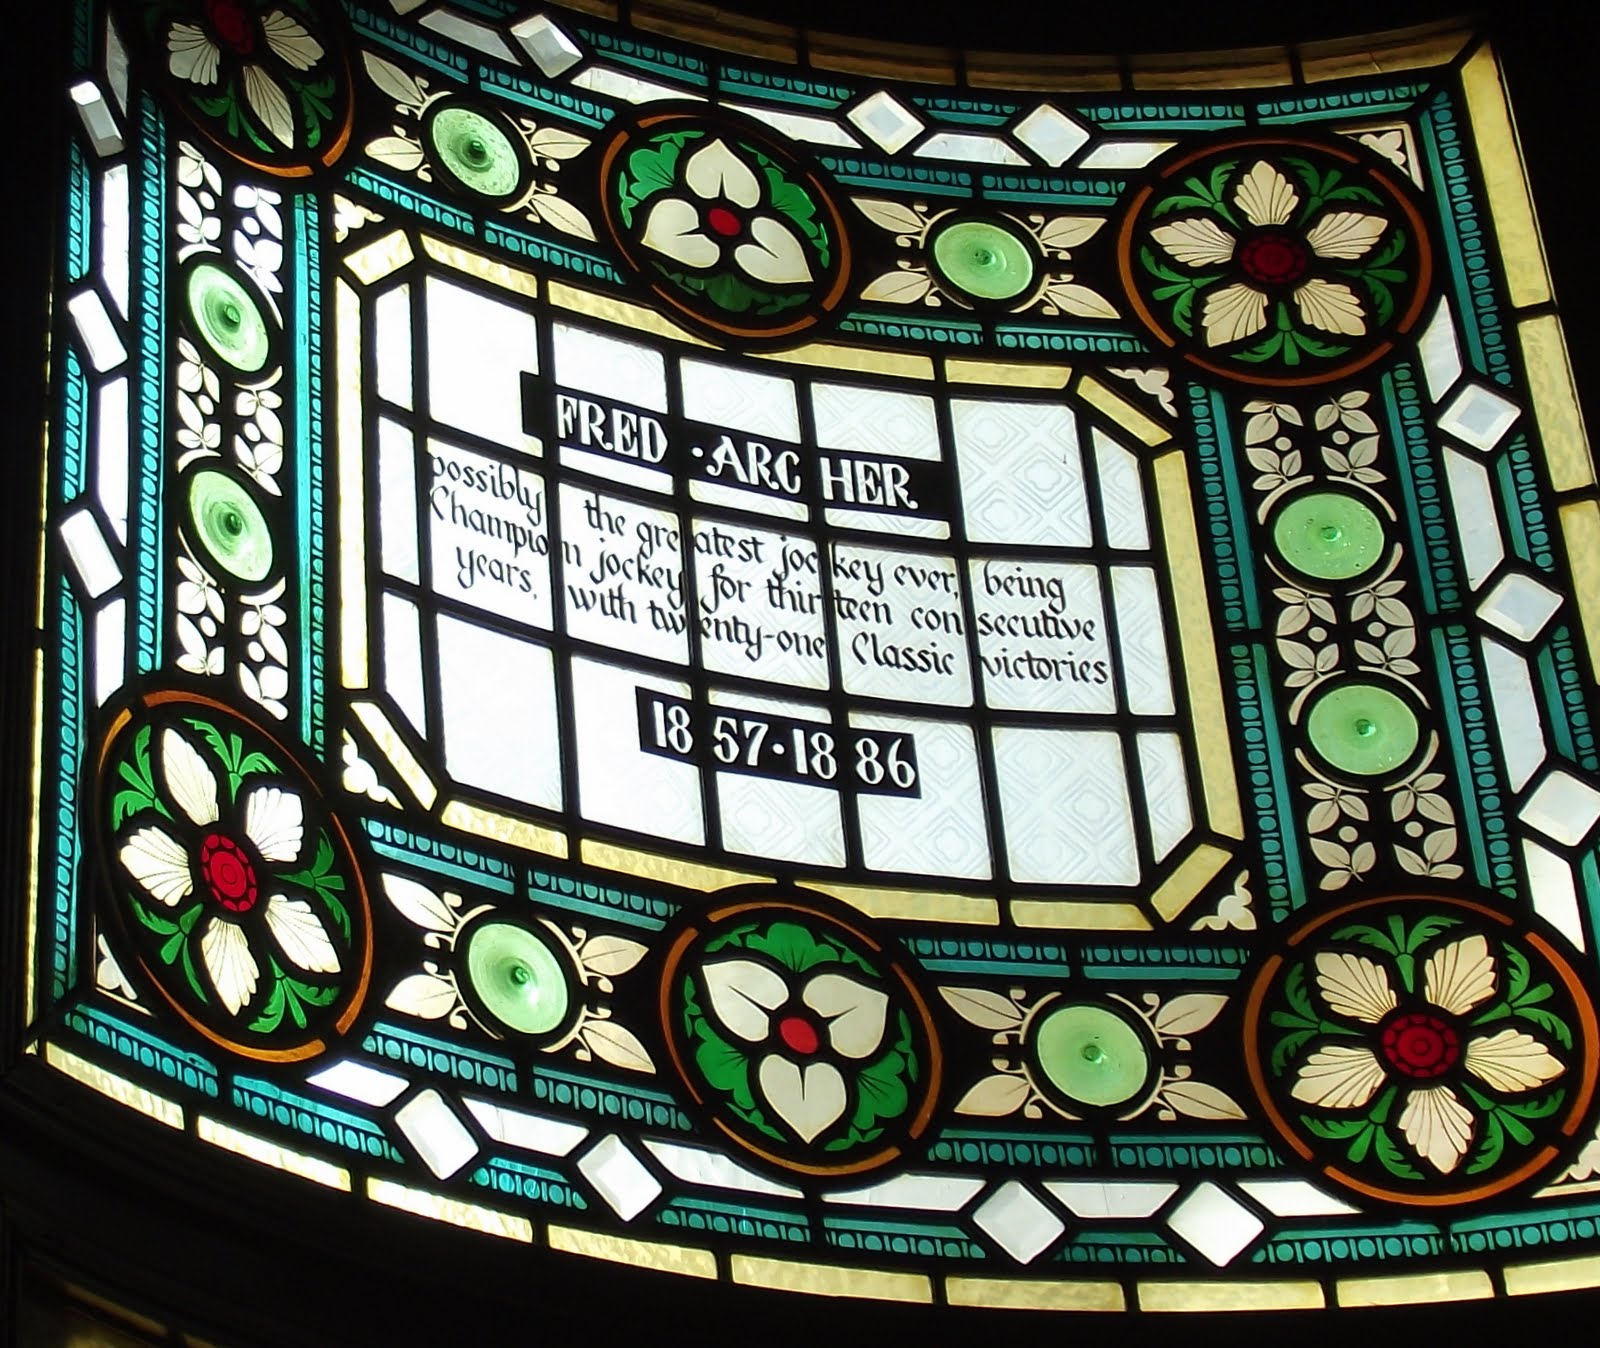 Fred Archer stained glass at the Champion pub